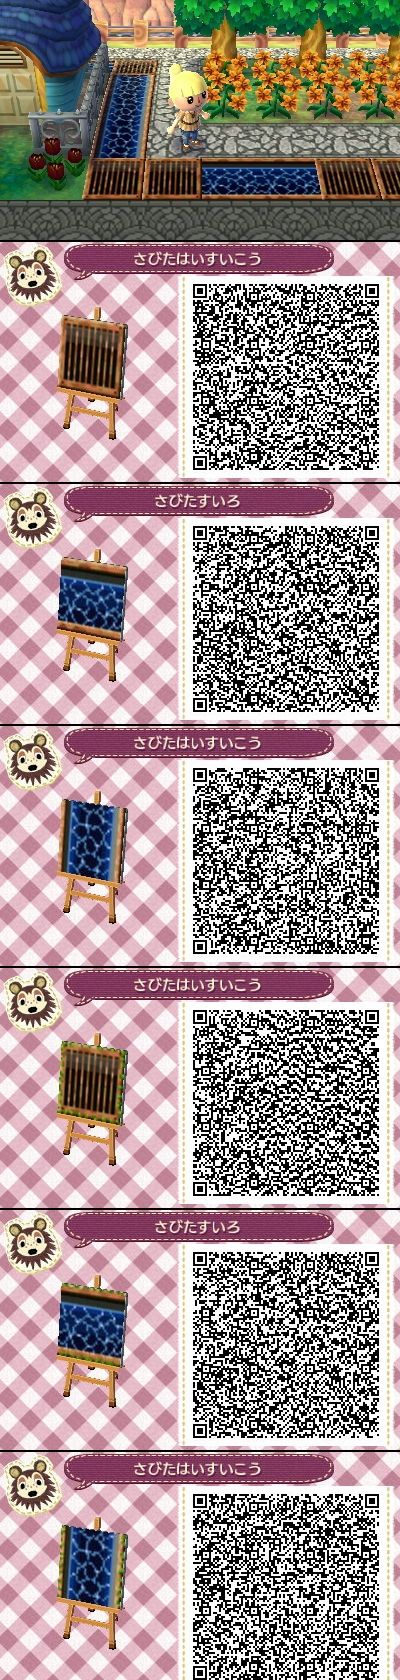 Floor Qr Codes New Leaf Of Animal Crossing New Leaf Qr Codes Water Outfits Qr Codes